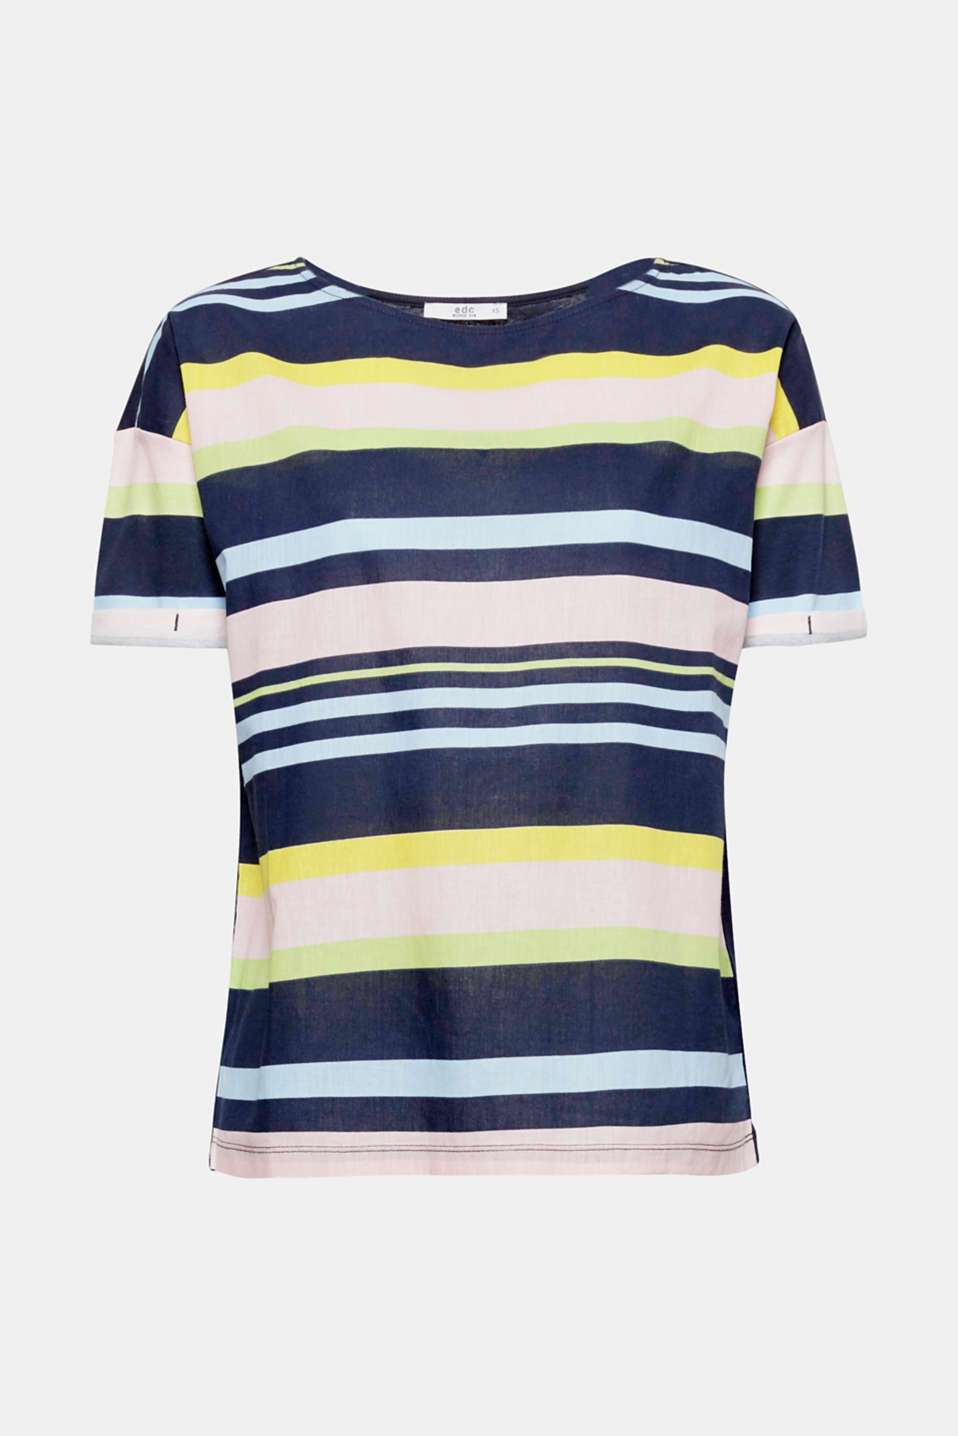 This boxy T-shirt in a mix of jersey and fabric creates a fresh look with a high level of comfort thanks to the pure cotton finish.